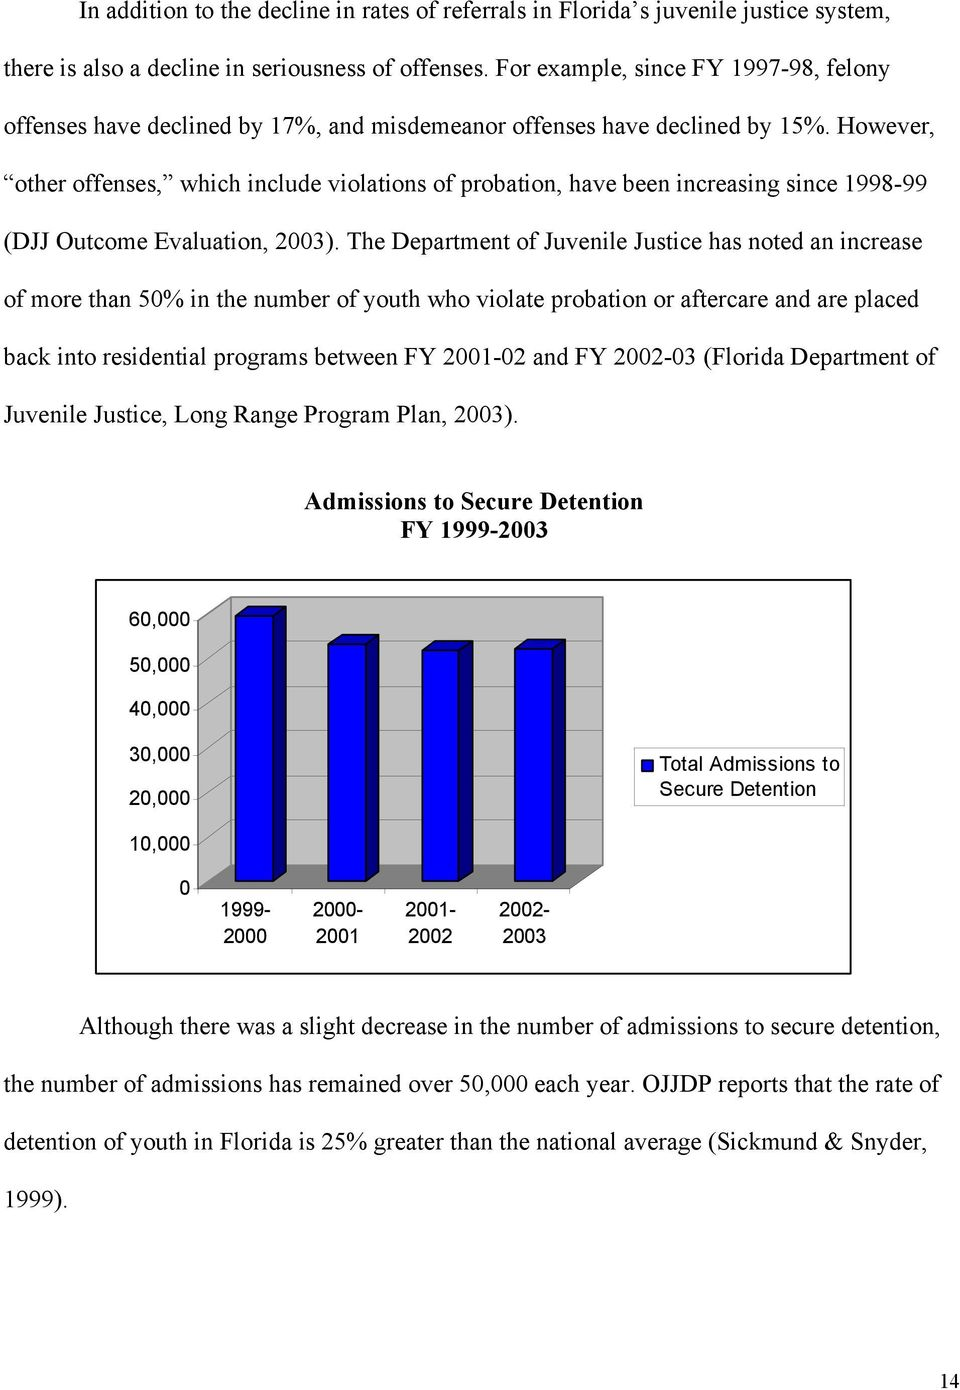 However, other offenses, which include violations of probation, have been increasing since 1998-99 (DJJ Outcome Evaluation, 2003).